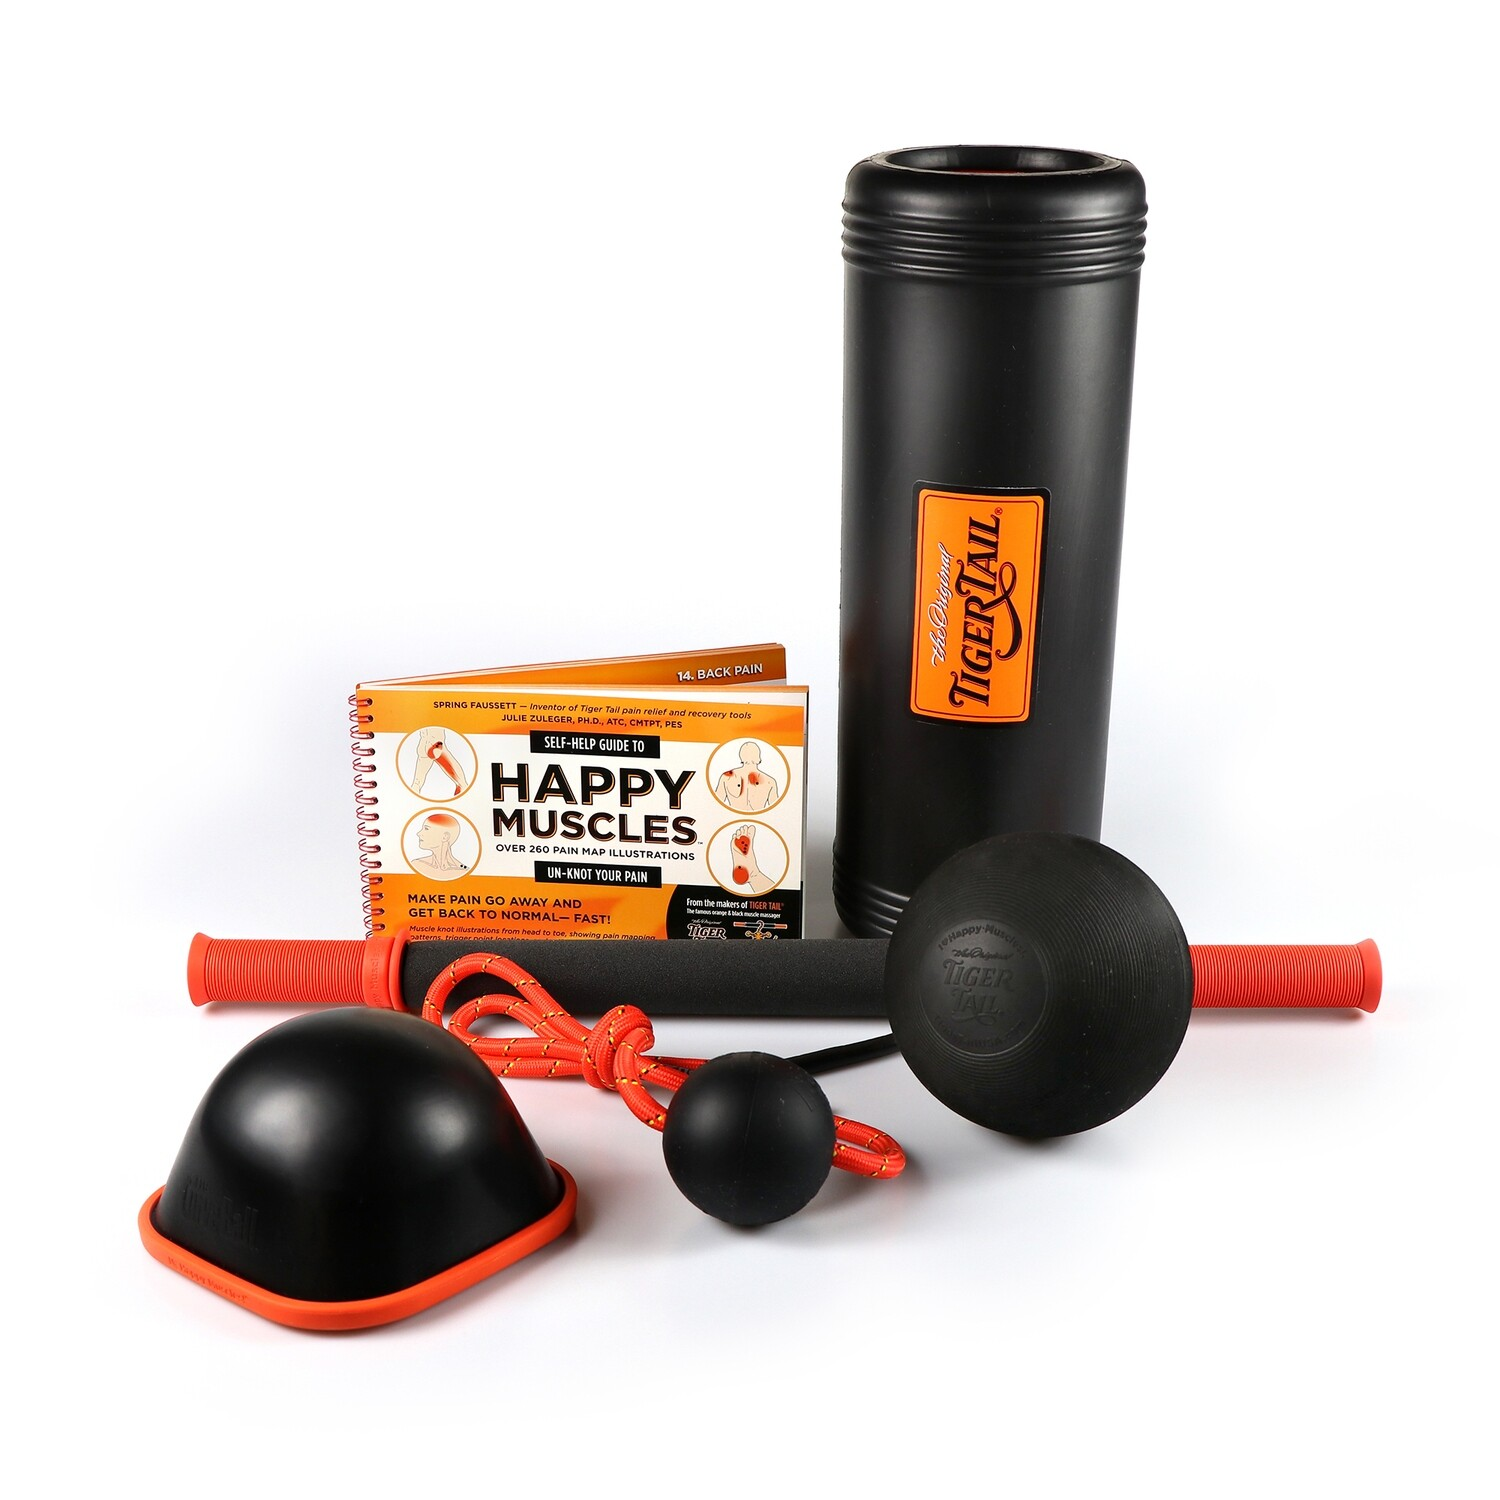 The Back Muscle Care Kit (Save 20%)